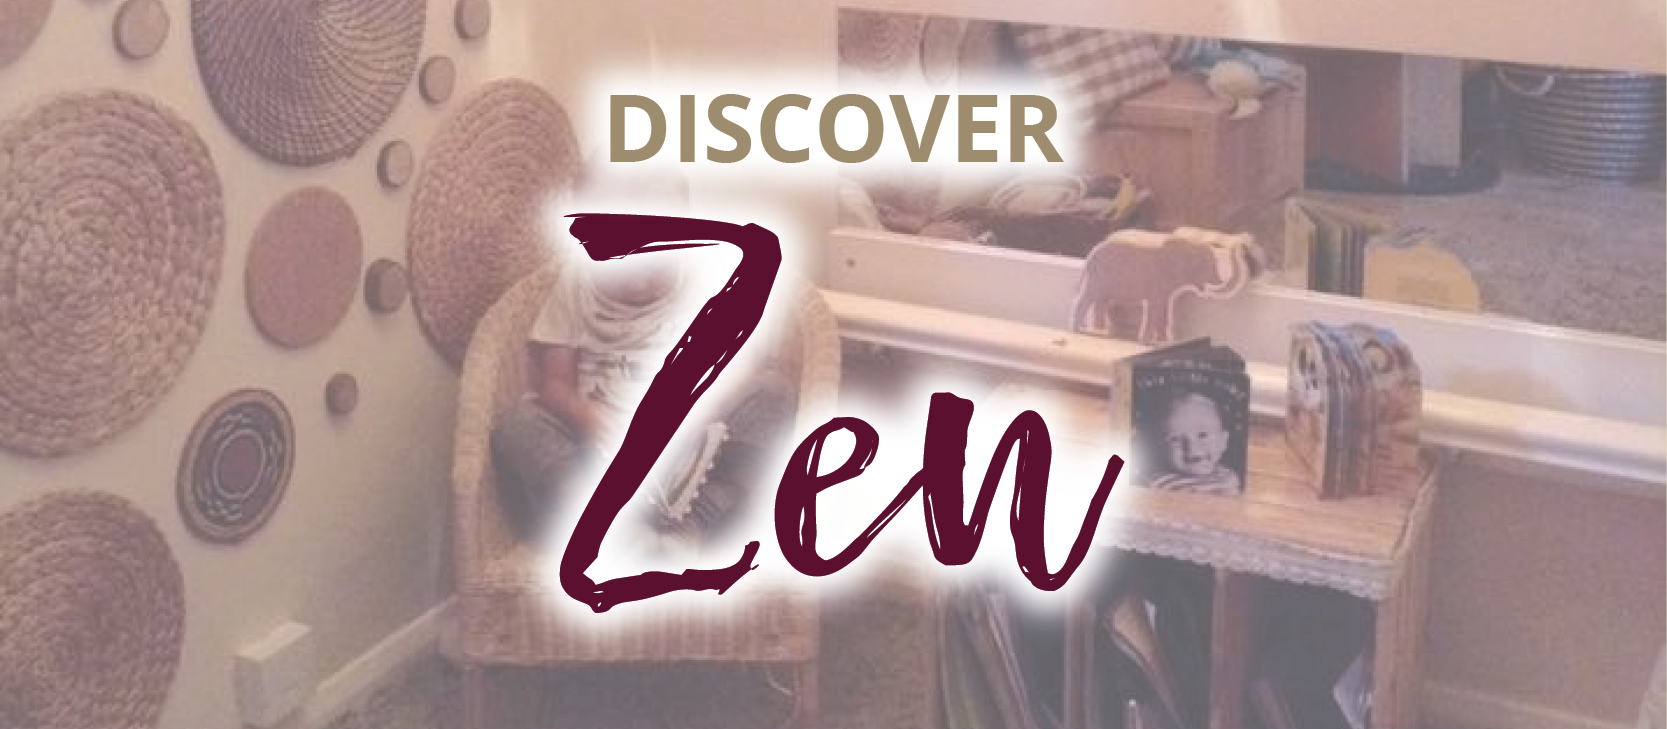 Cardiff Network - Discover Zen - 23/10/2021